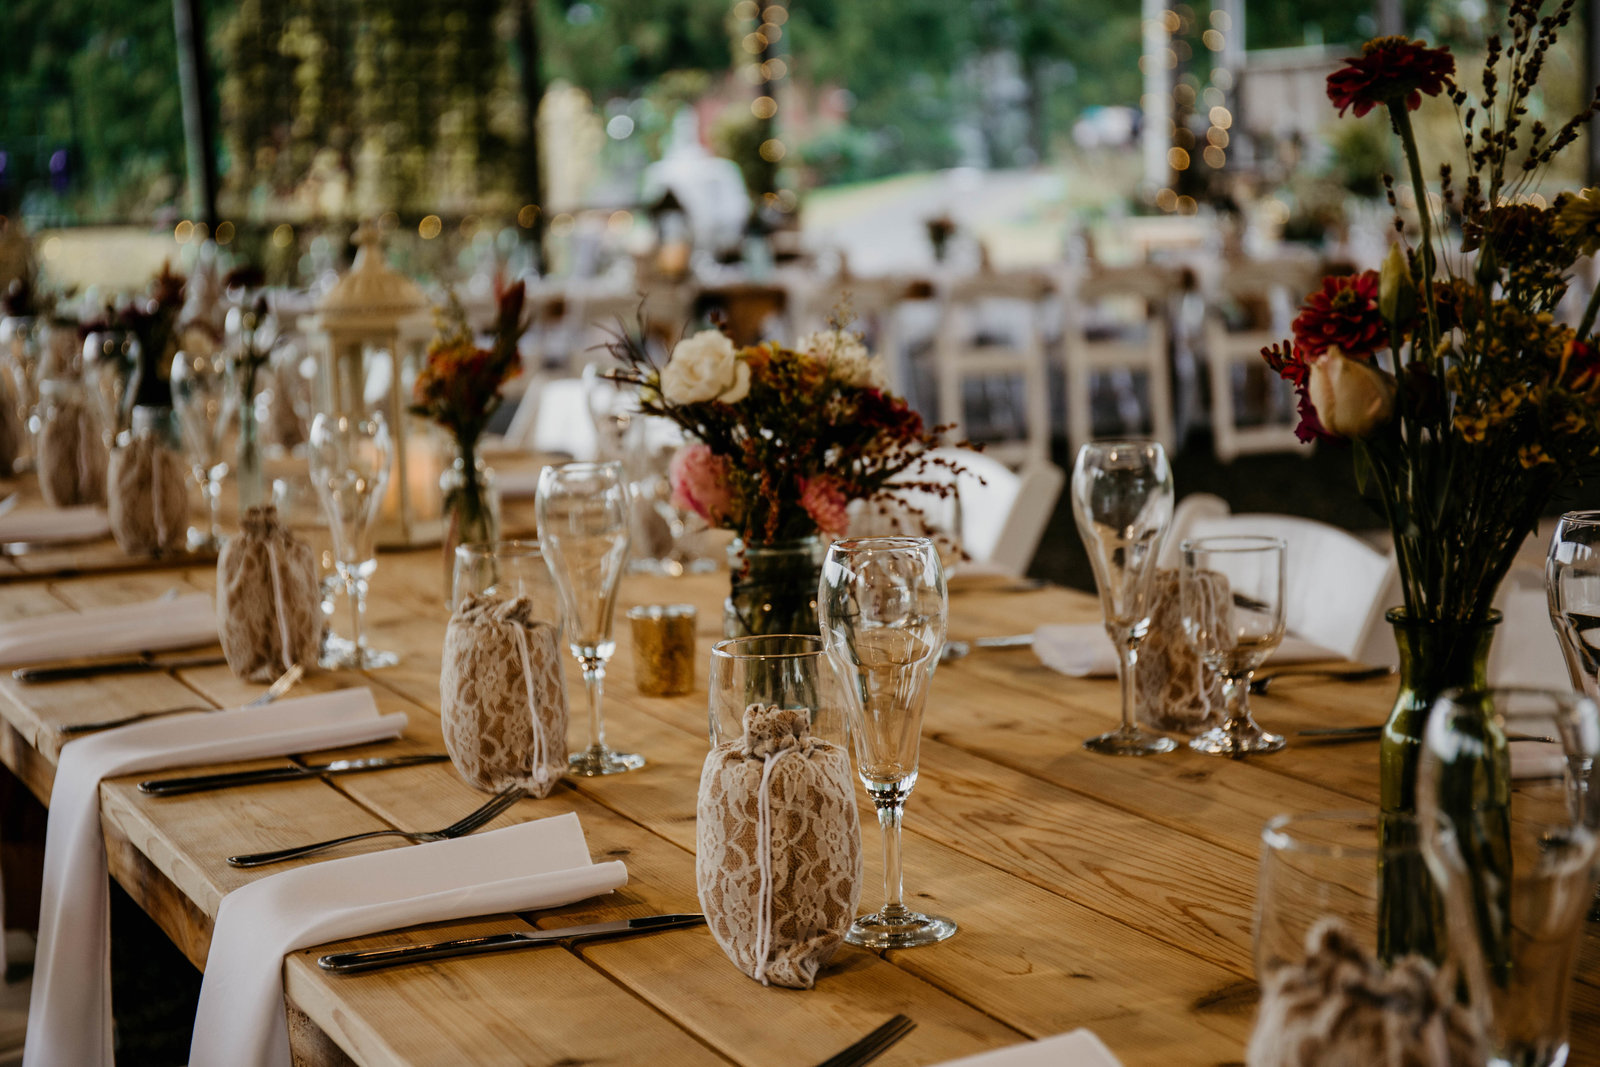 Table setting at a reception at Rustic Ridge View Farm.